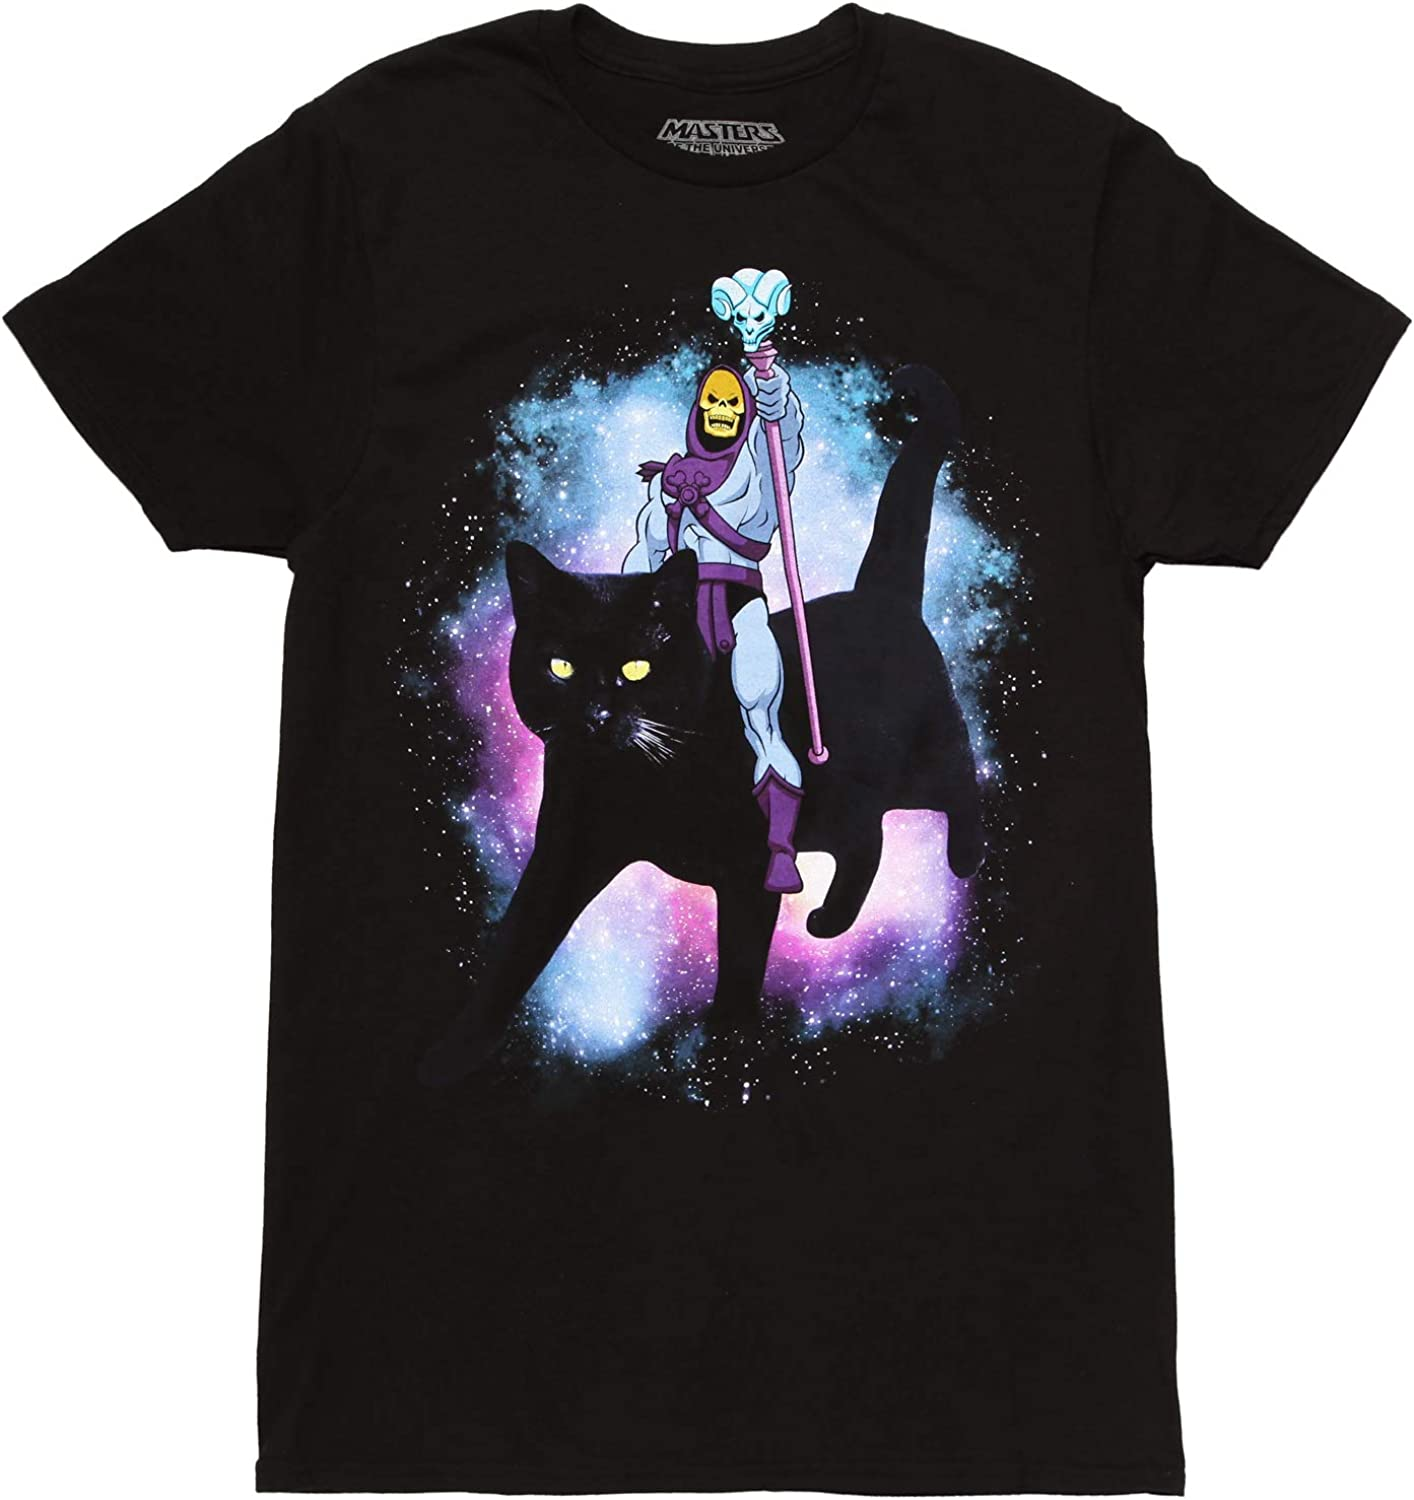 Masters of New life New arrival The Universe Skeletor a Cat Riding T-Shirt Adult